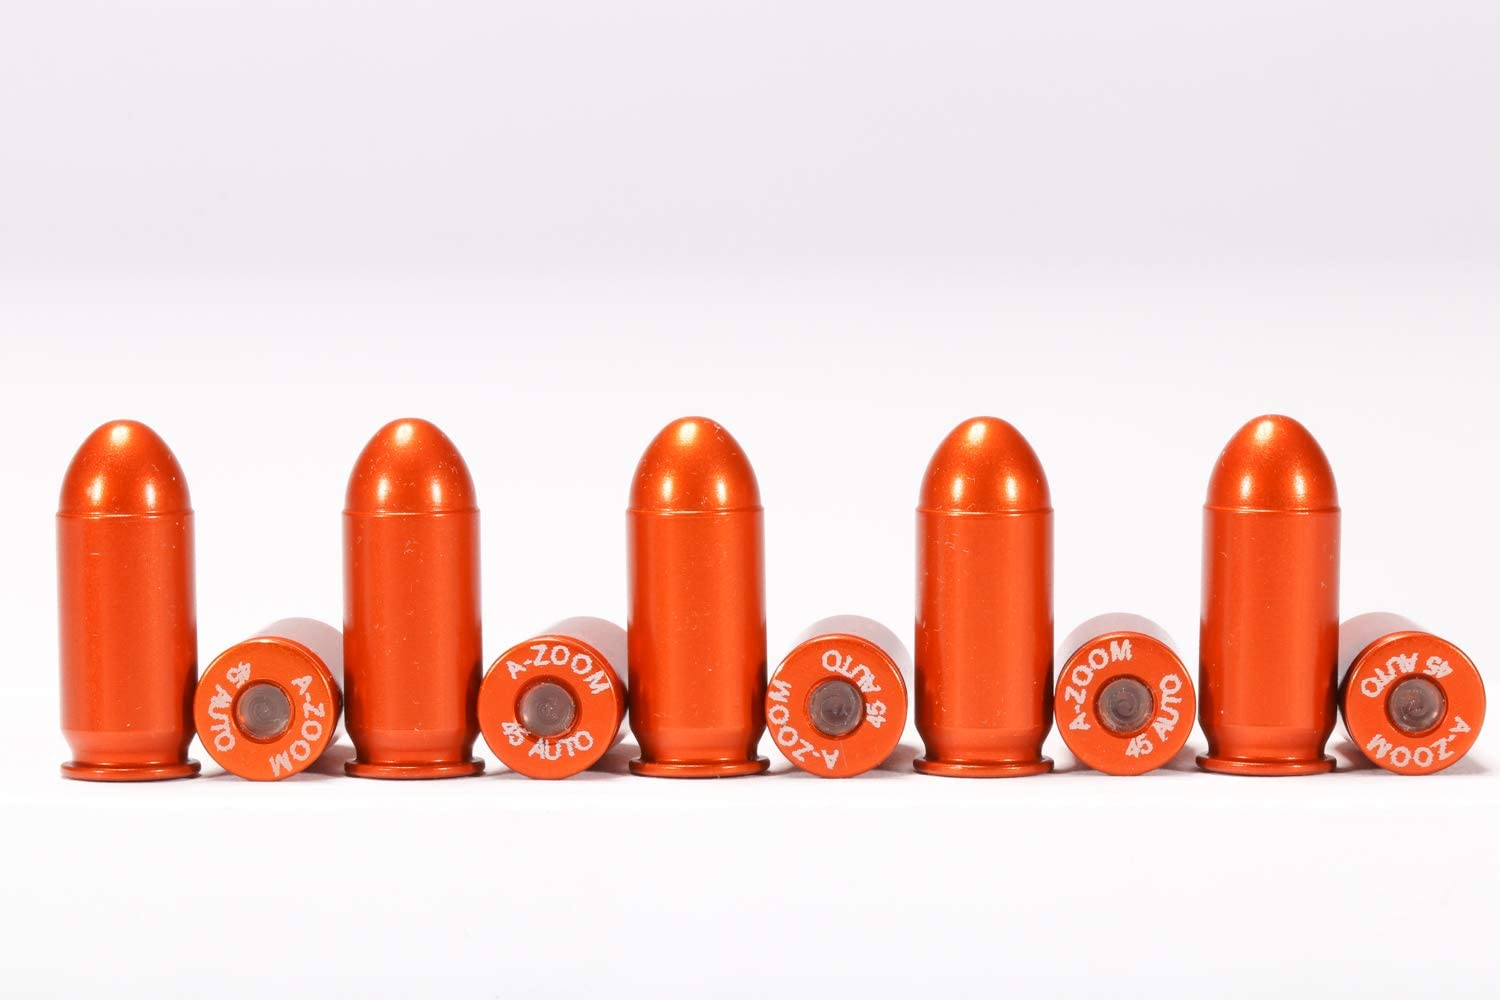 SAF-T-TRAINERS BRIGHTLY COLORED ORANGE SNAP CAPS DUMMY ROUNDS 10 .40 ACP